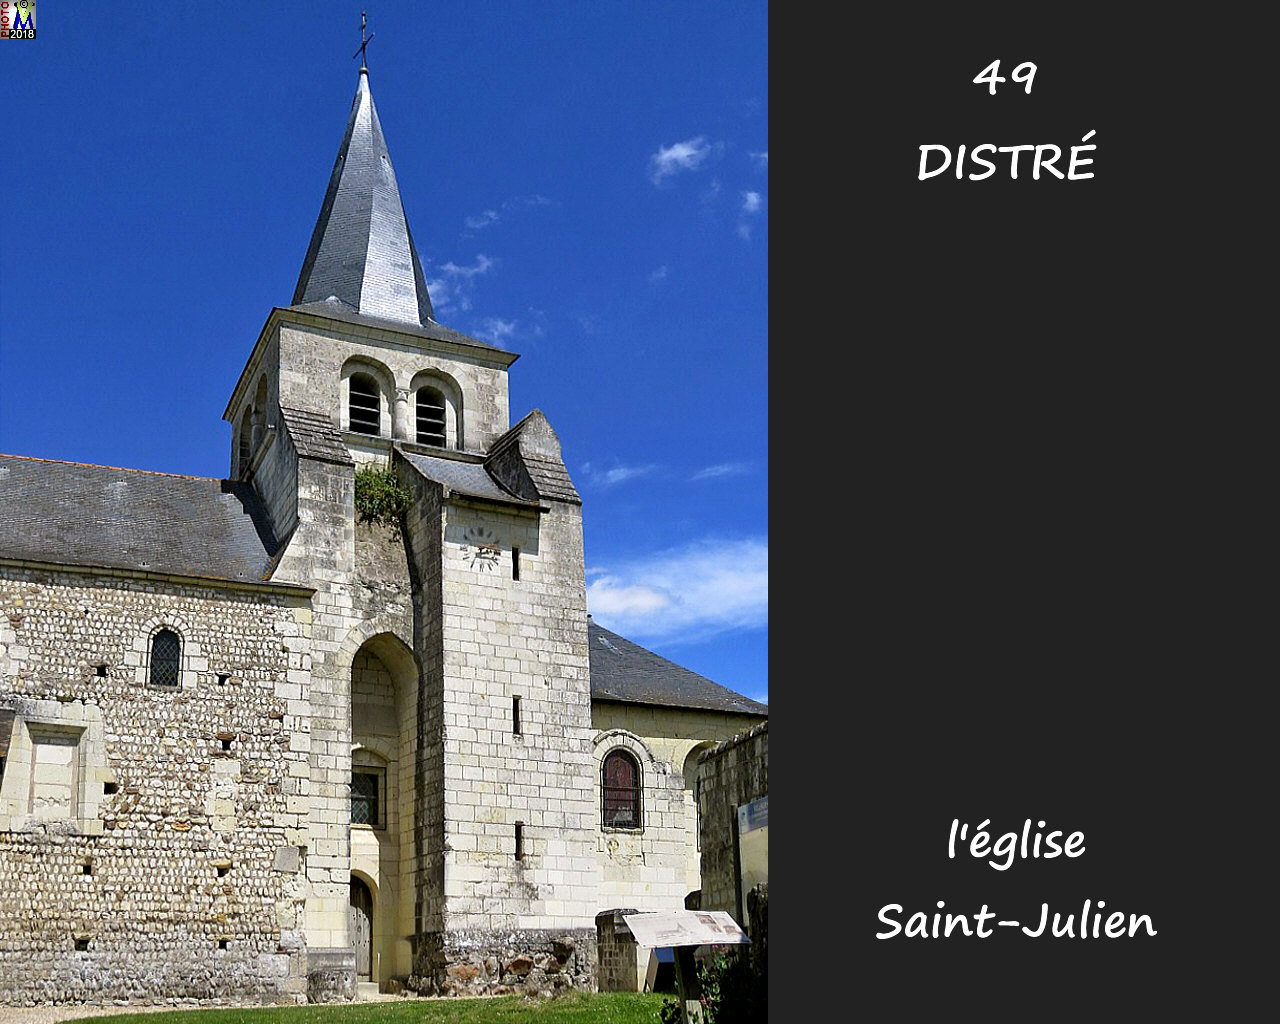 49DISTRE_eglise_1006.jpg